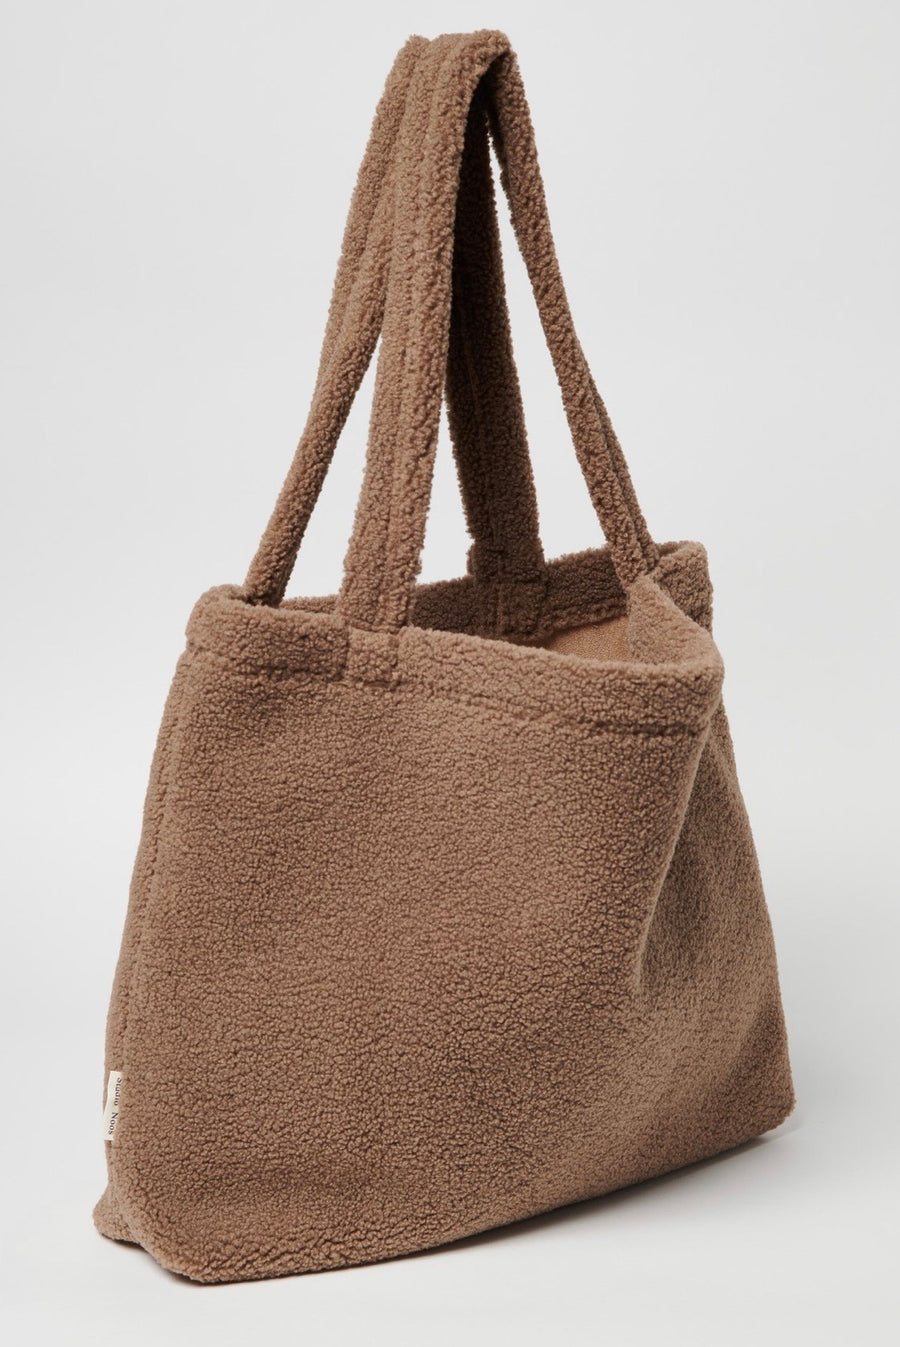 STUDIO NOOS - Sac de maternité Chunky - Brown Teddy - LP